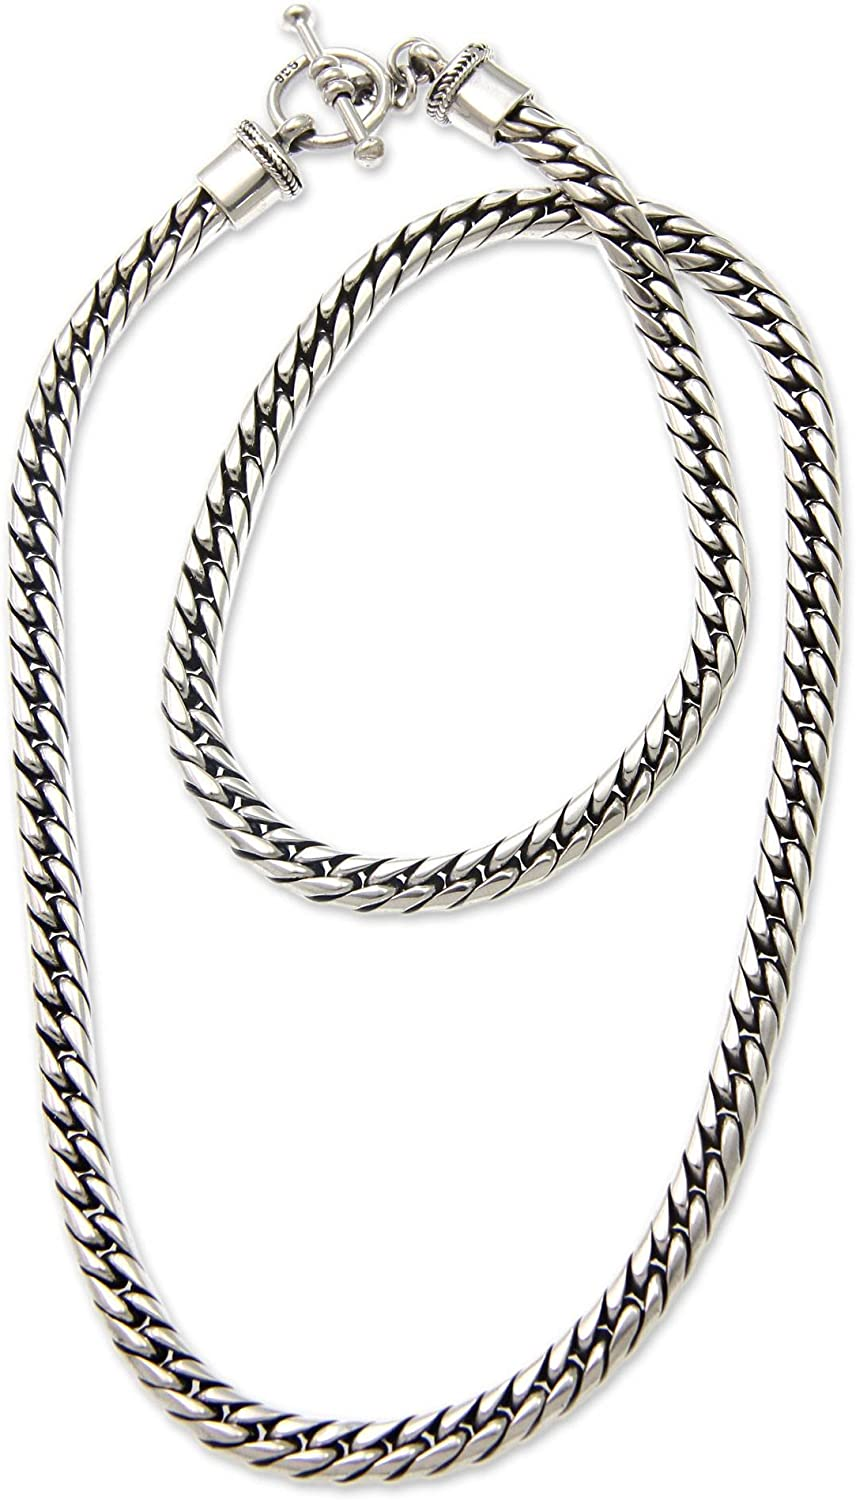 """NOVICA .925 Sterling Silver Braided Chain Men's Necklace with Toggle Clasp, 21.75"""", Sleek'"""